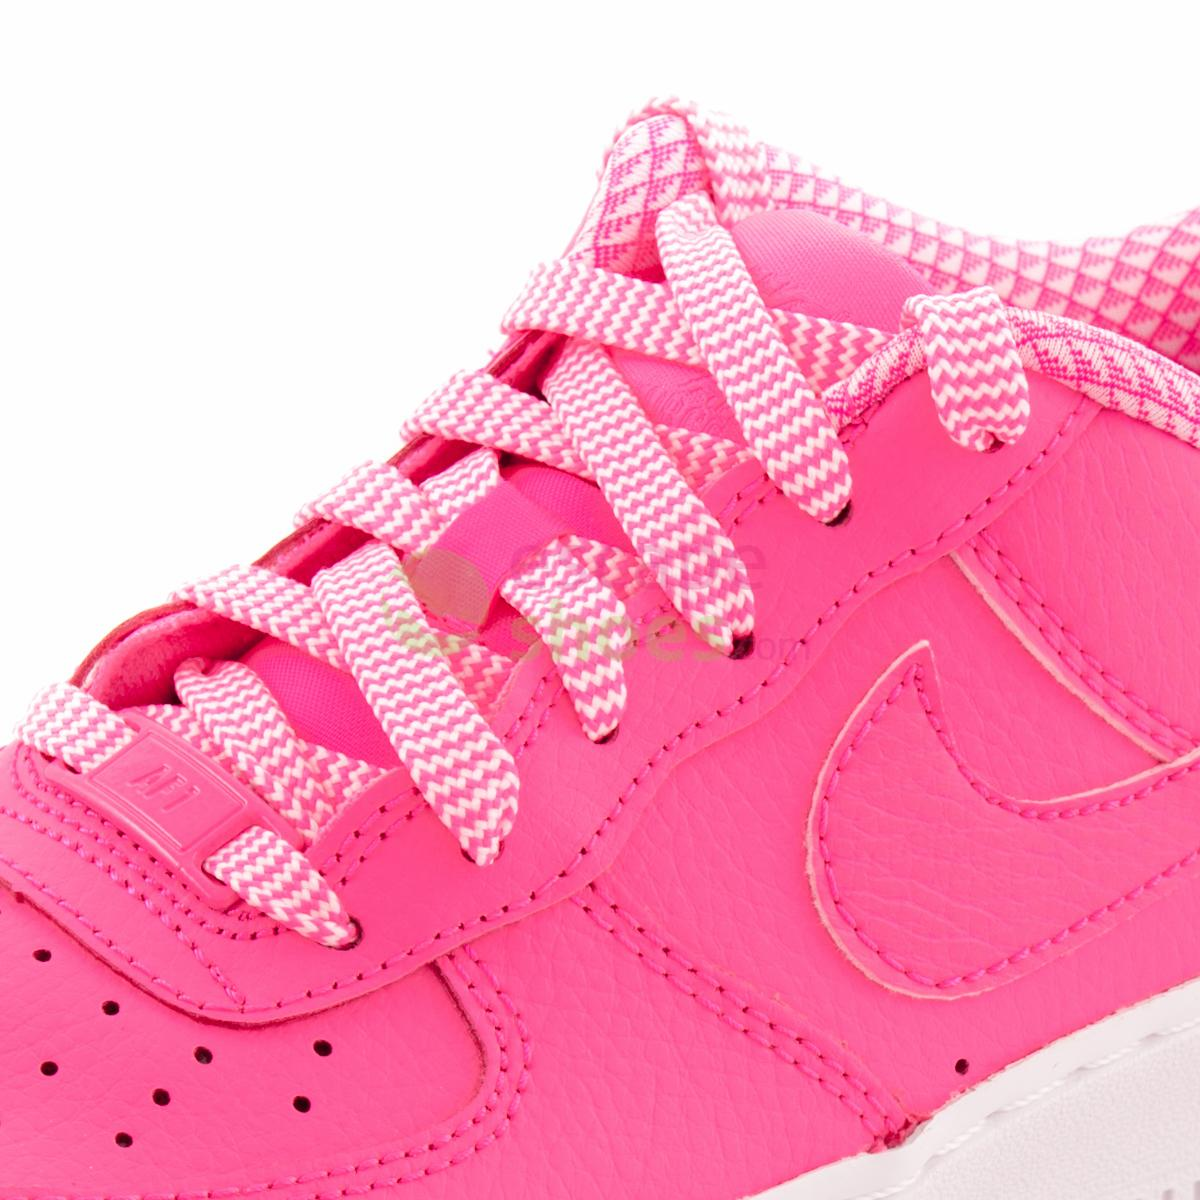 NIKE Air Force 1 Gs Pink Pow White 314219 615